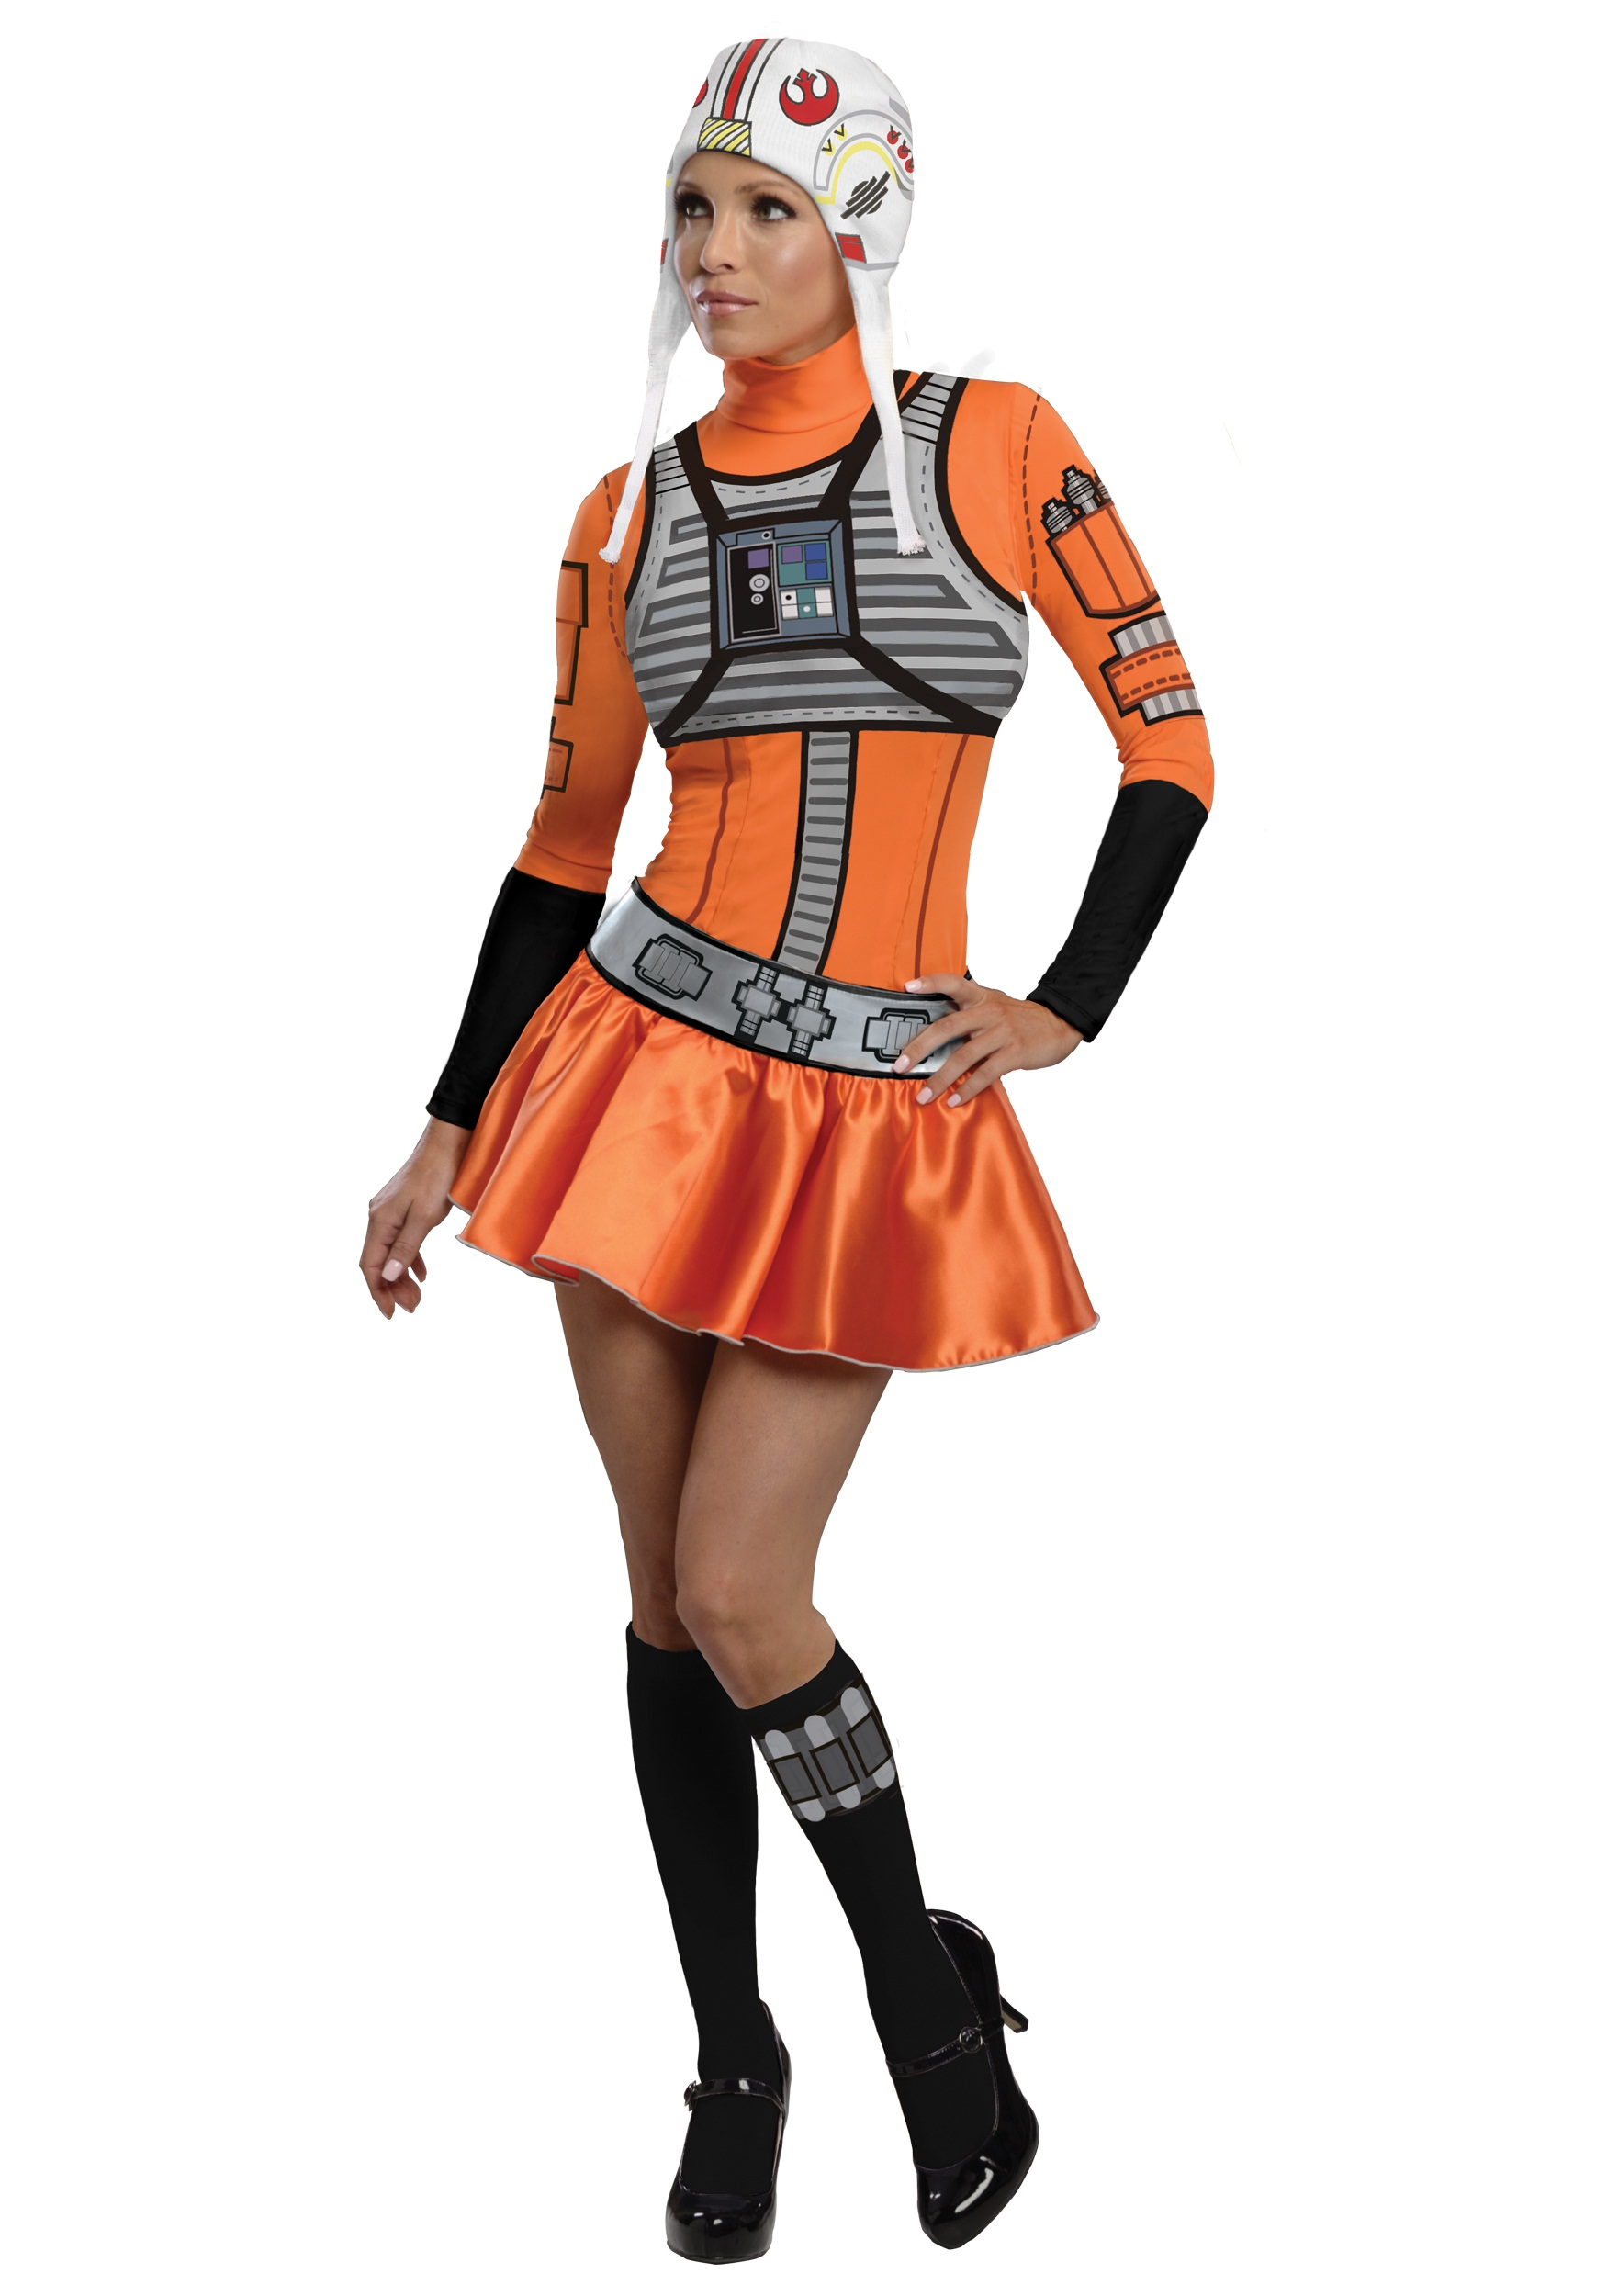 What Adult star wars costume